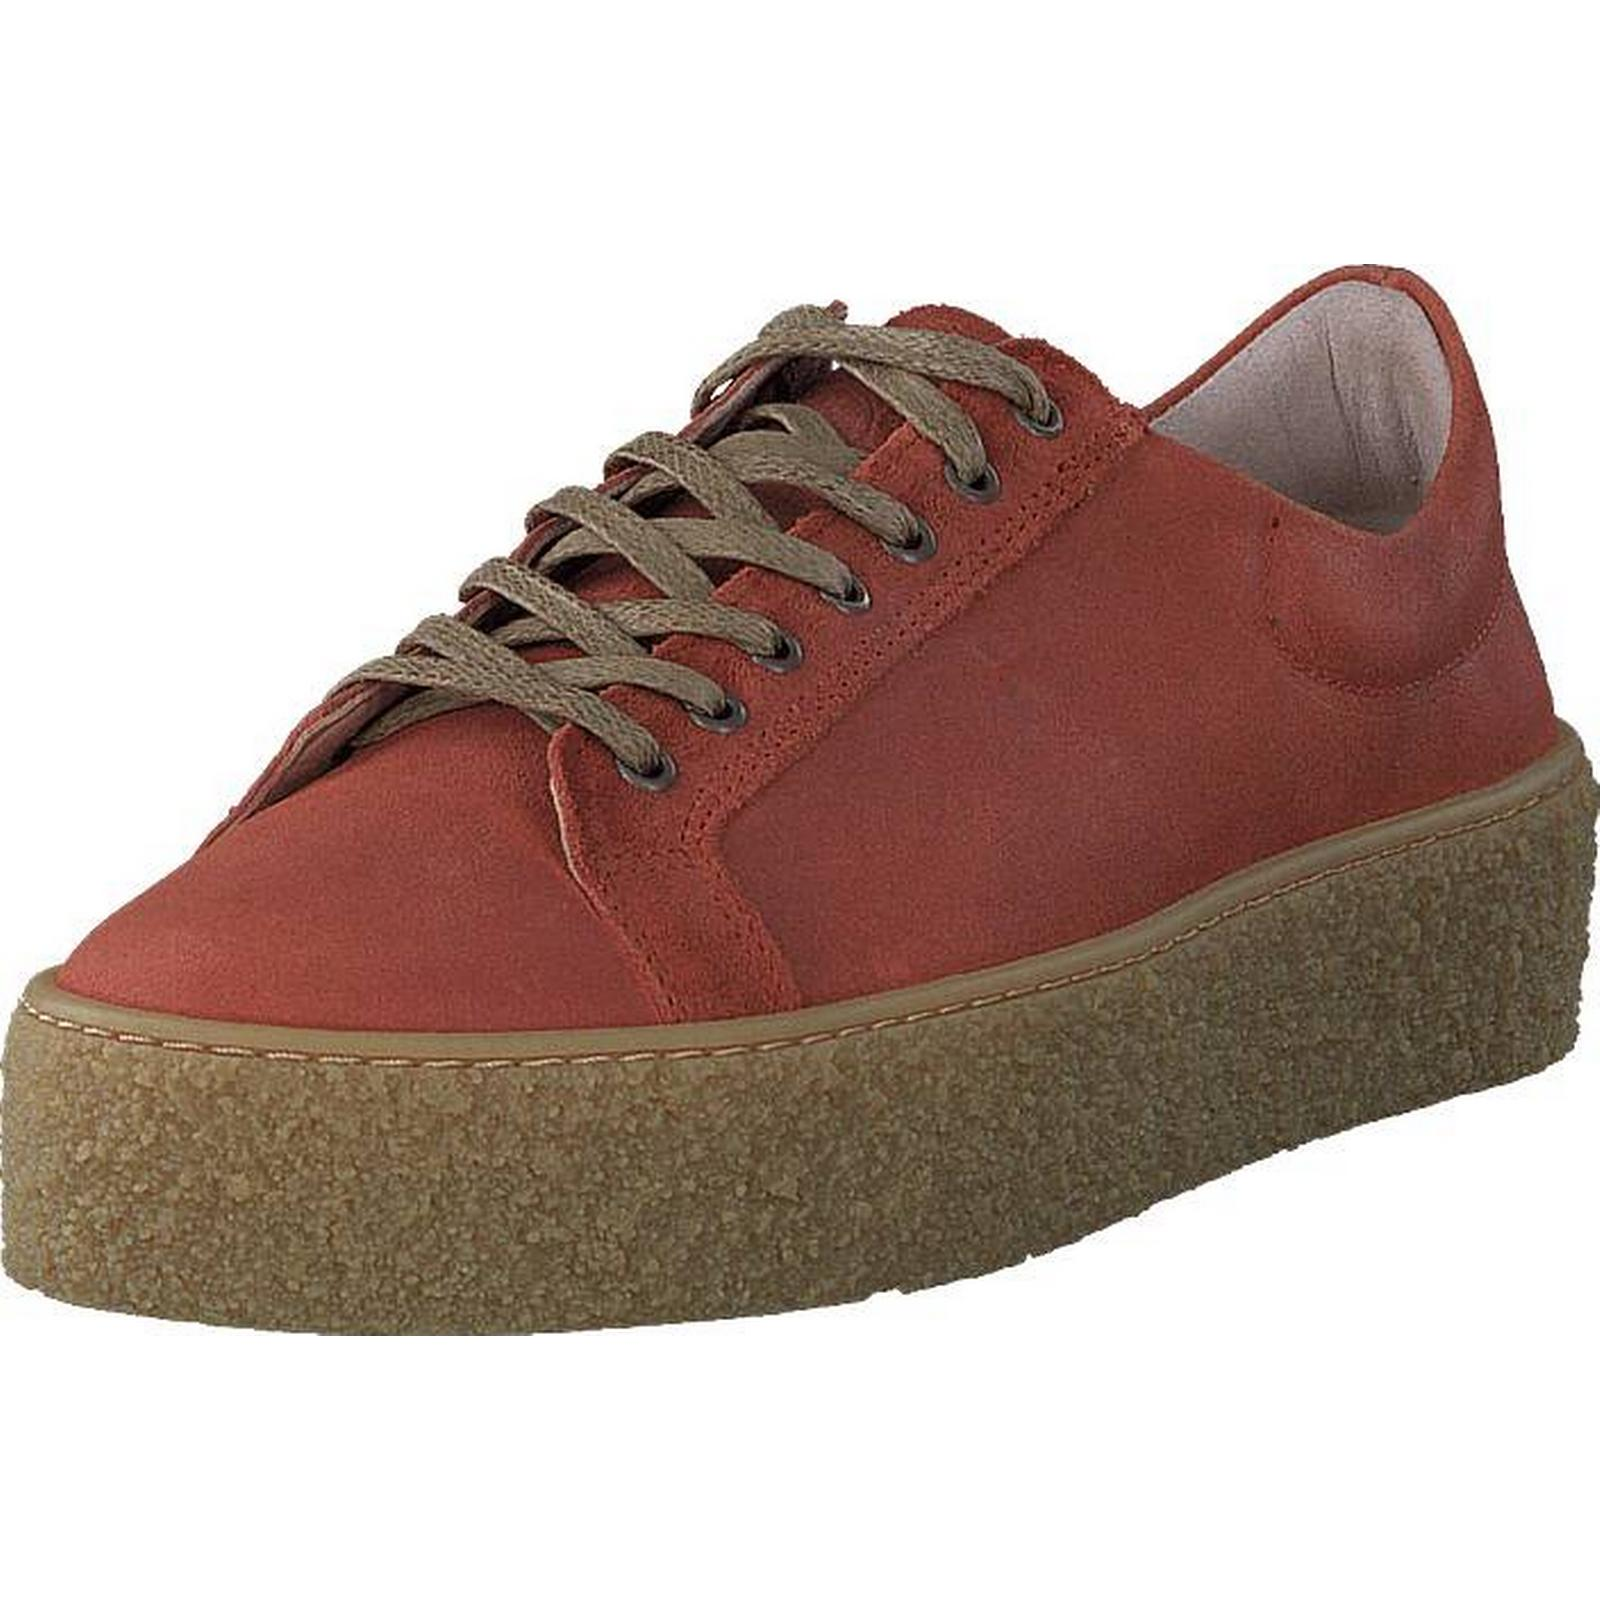 Sneaky Steve Sidder Light Light Sidder Rust Suede, Shoes, Trainers & Sport Shoes , Low-top Trainers, Red, Brown, Female, 36 11762b